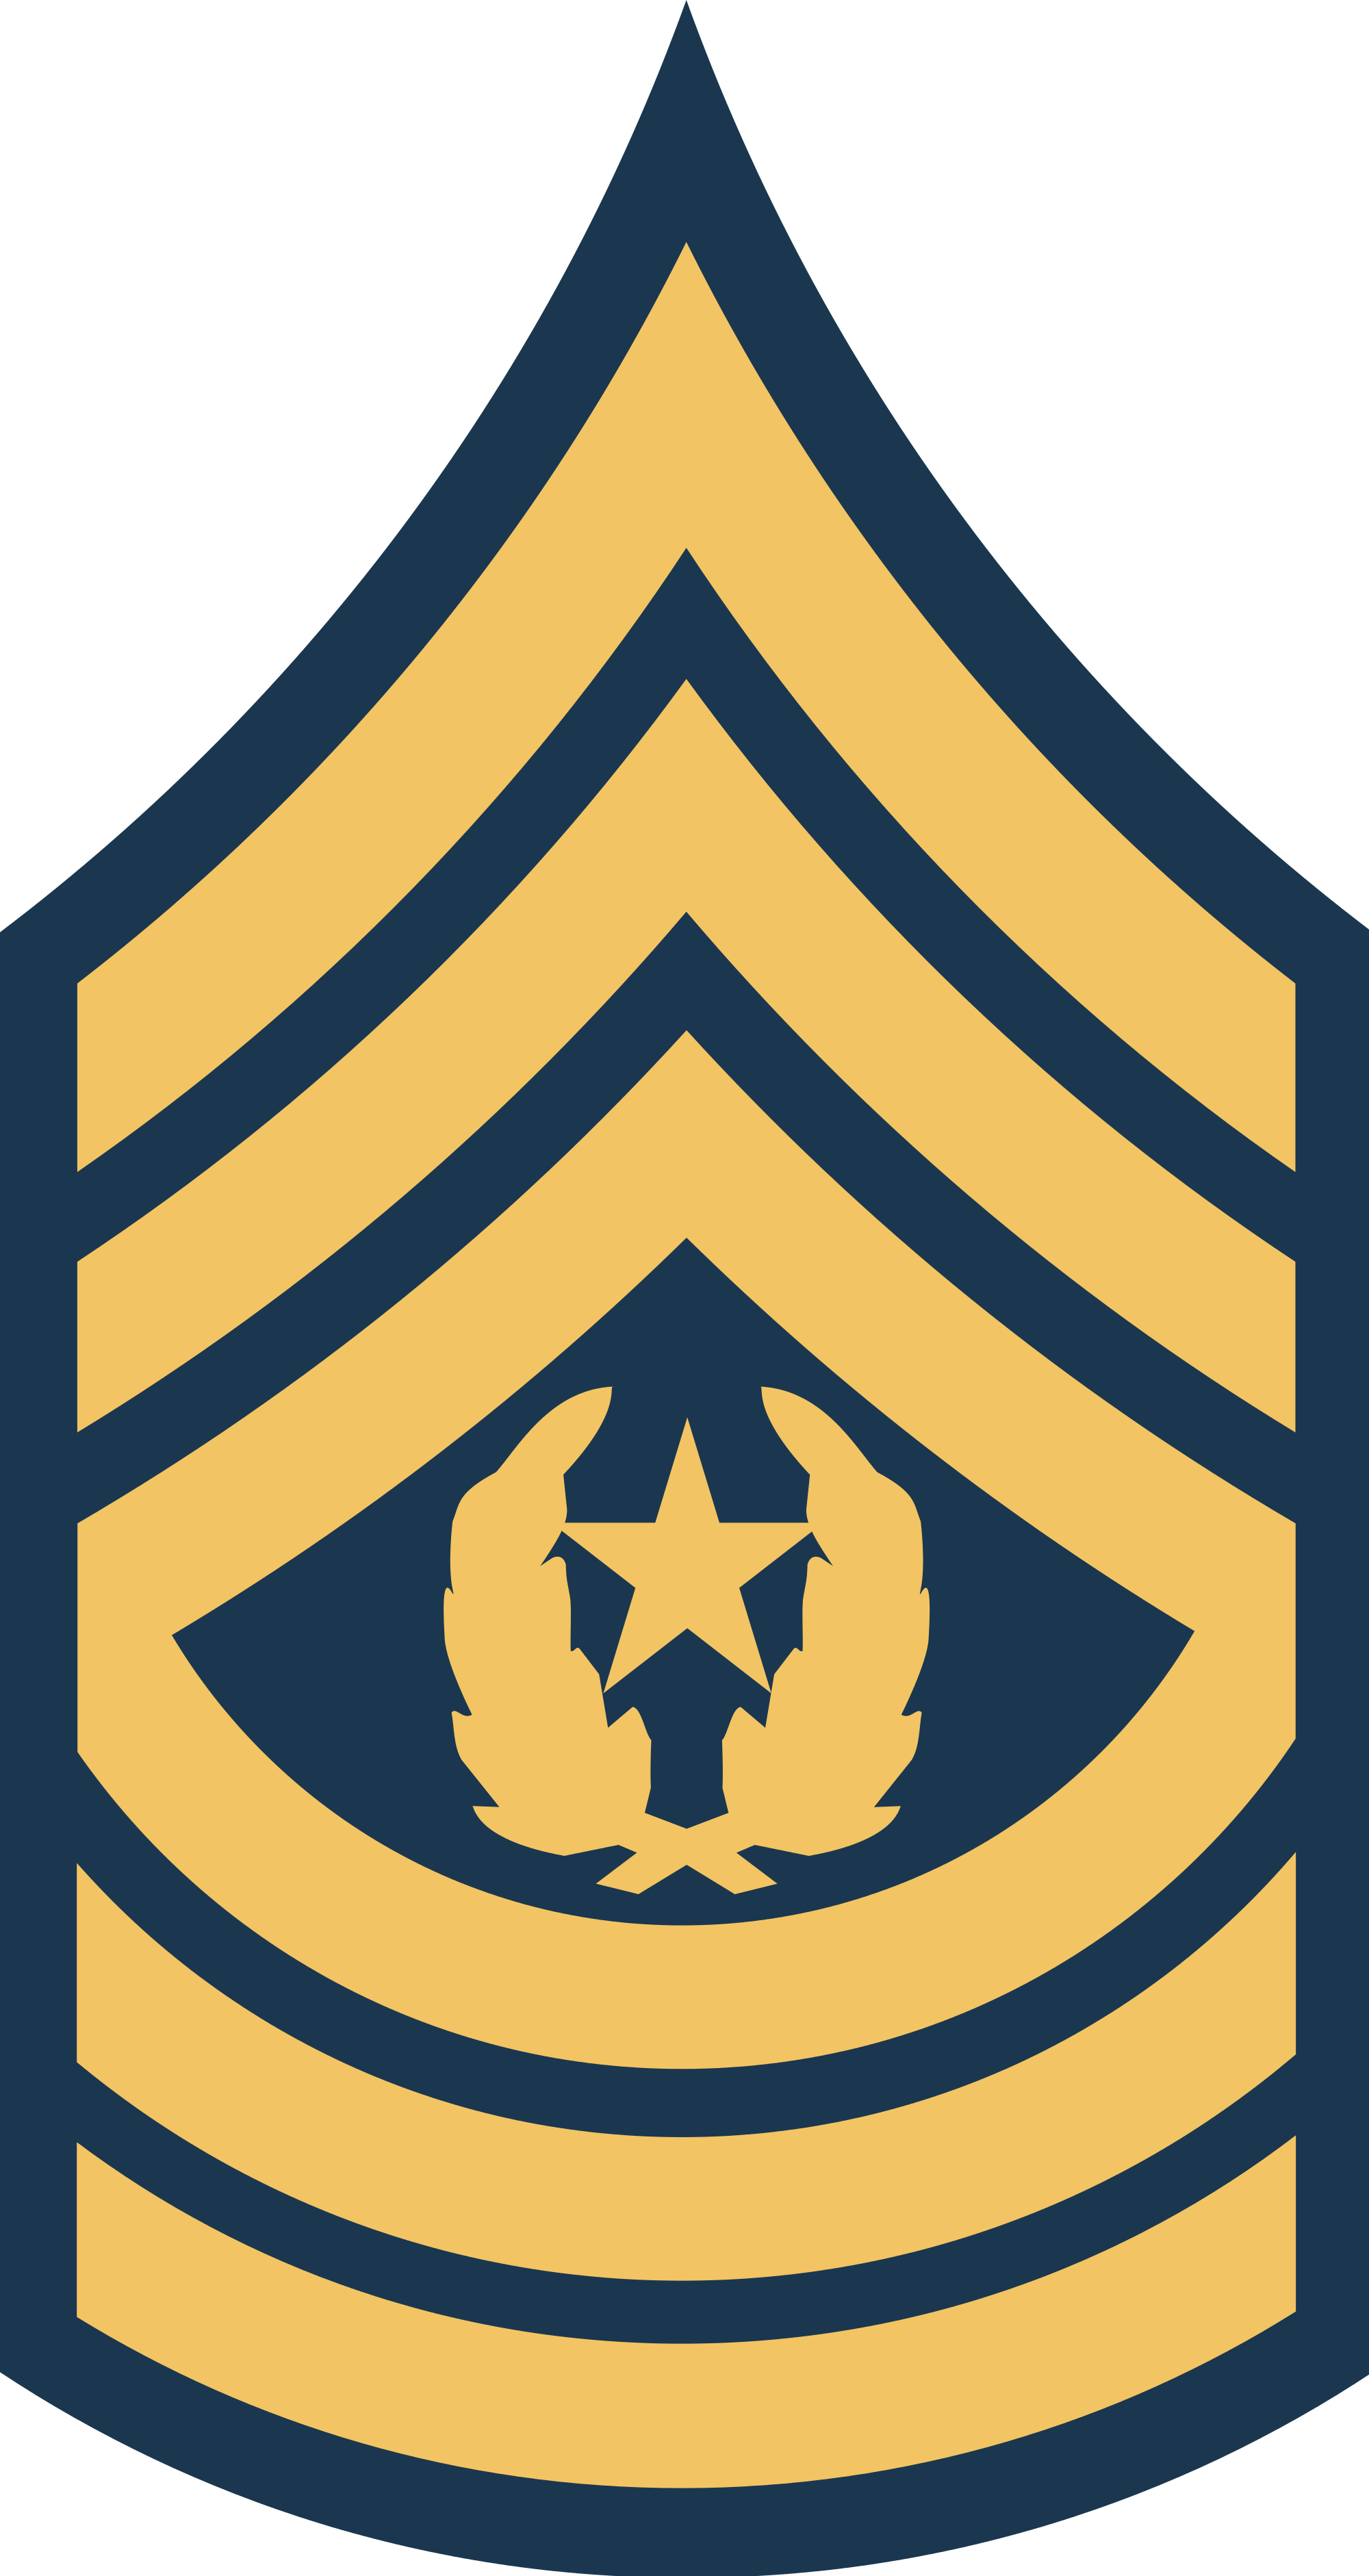 Army Csm Rank PNG Transparent Army Csm Rank.PNG Images..